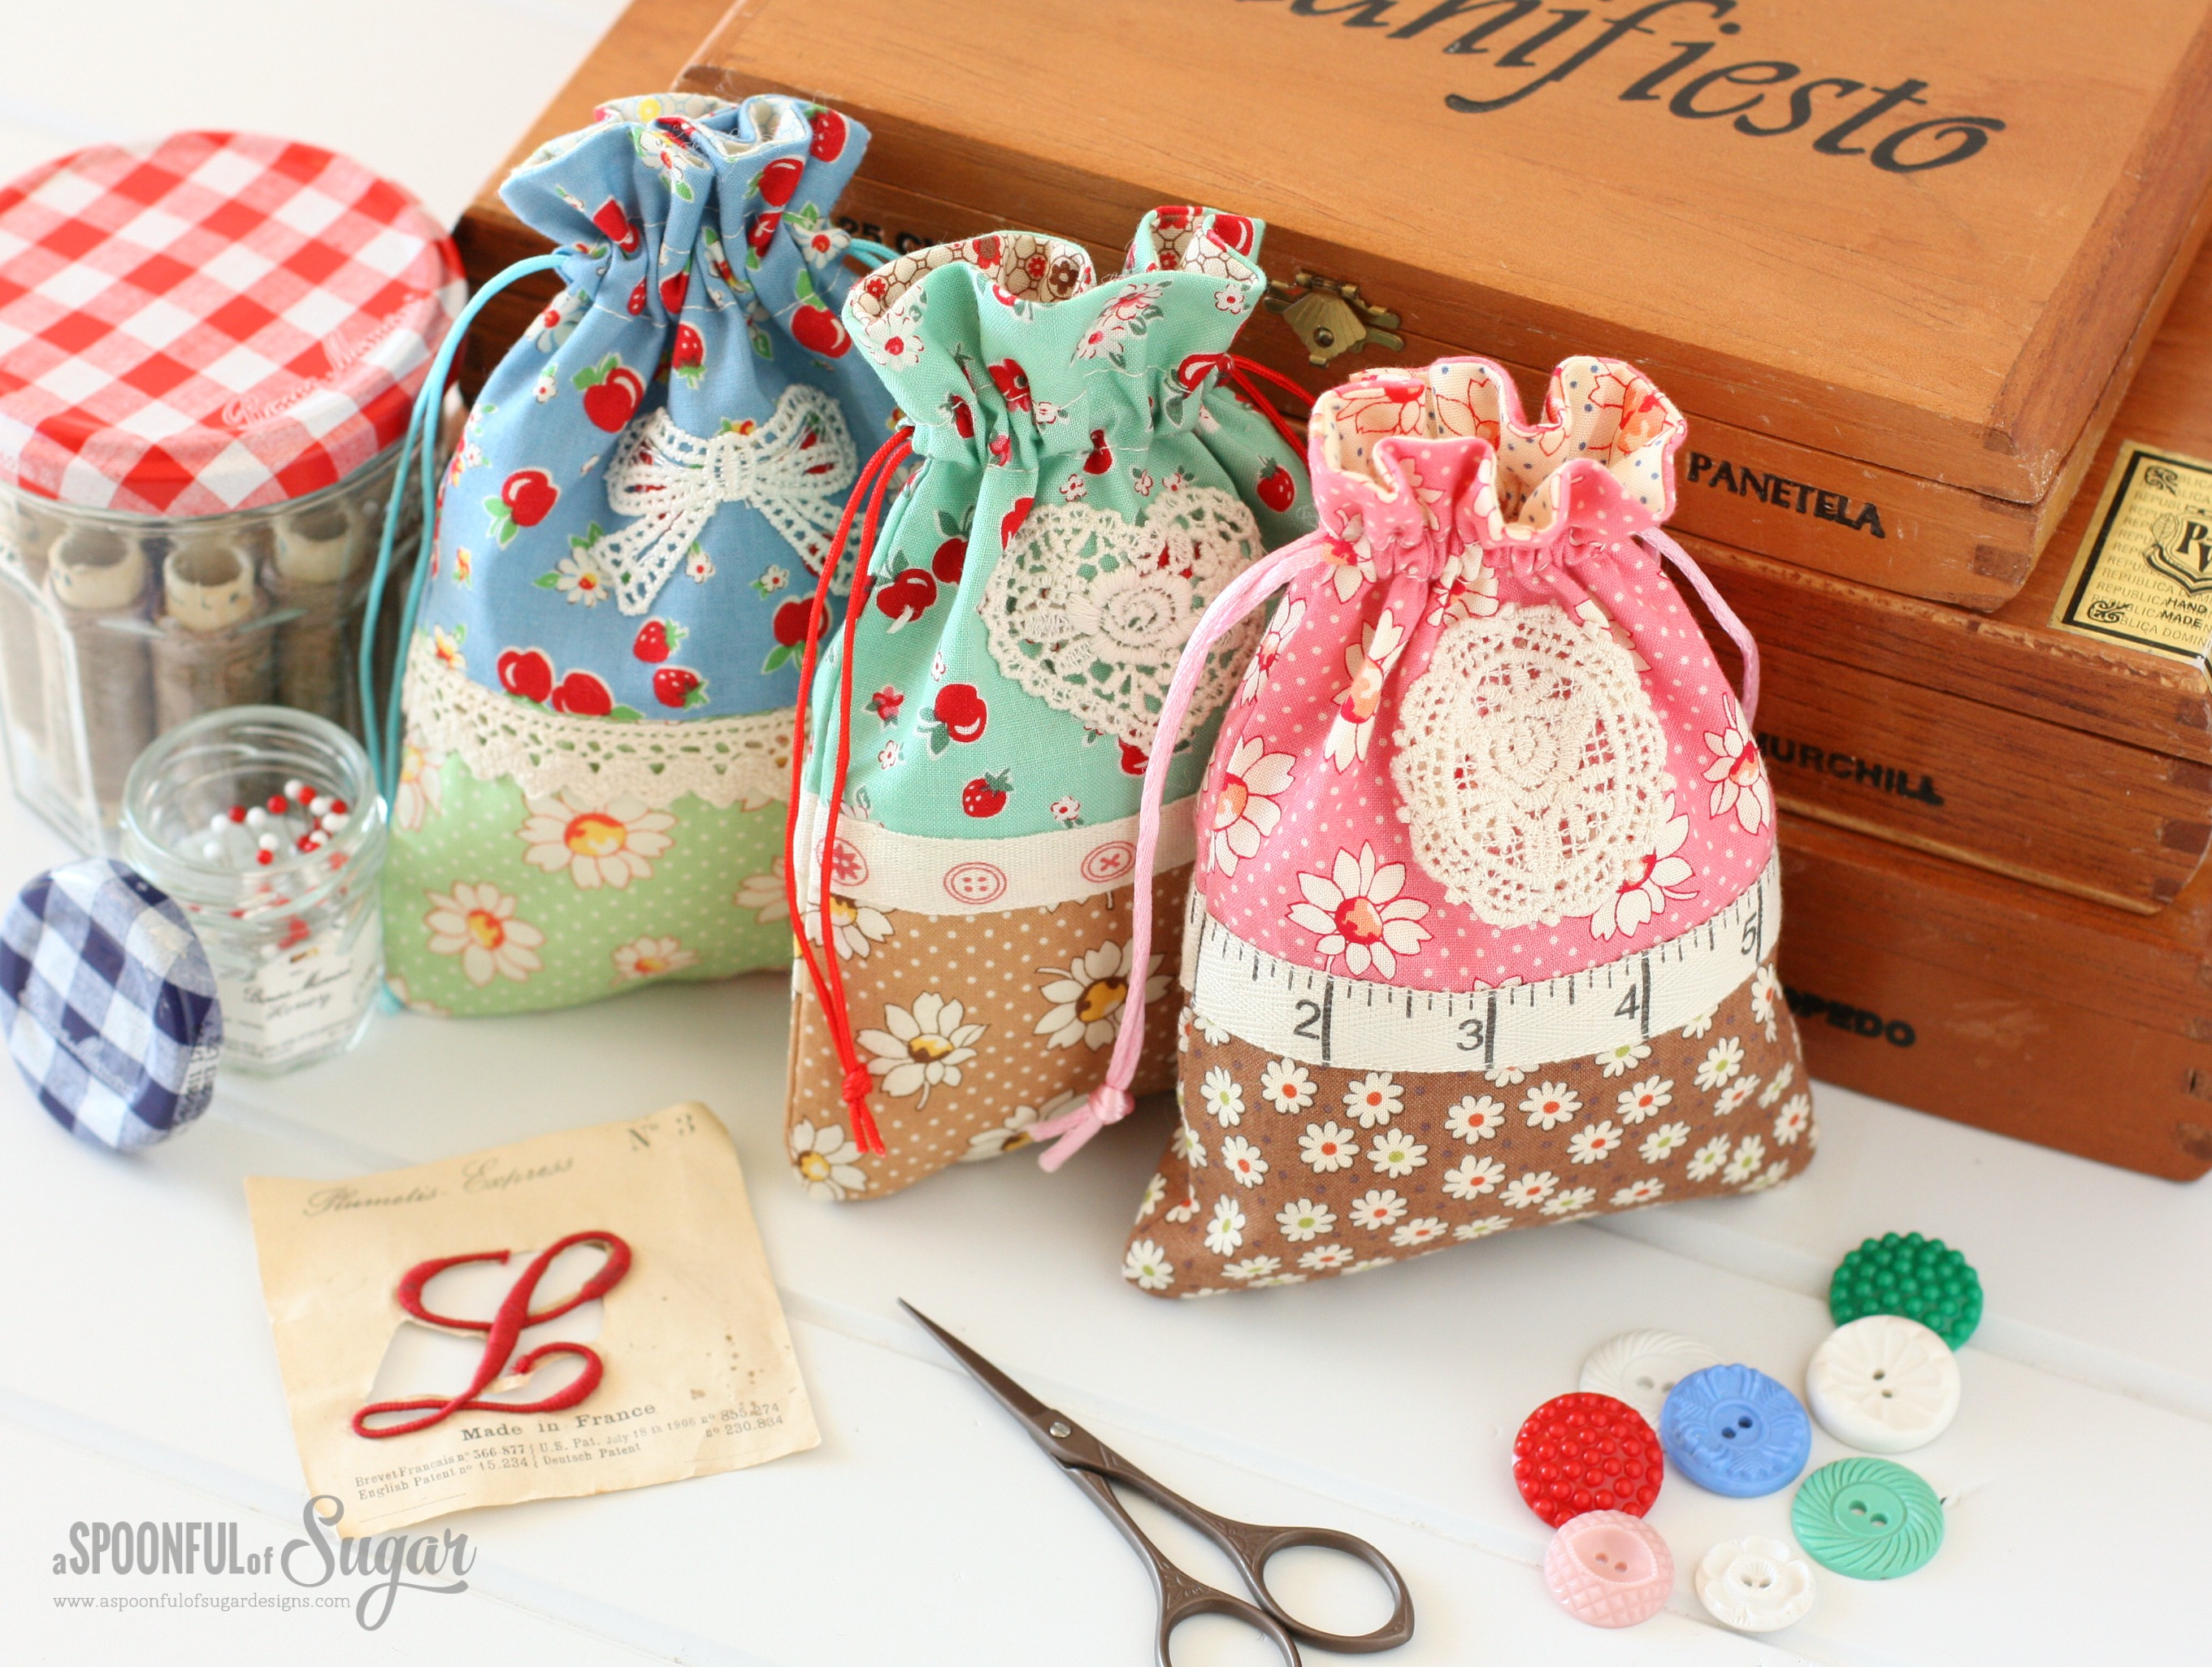 Retro Drawstring Bag - A Spoonful of Sugar